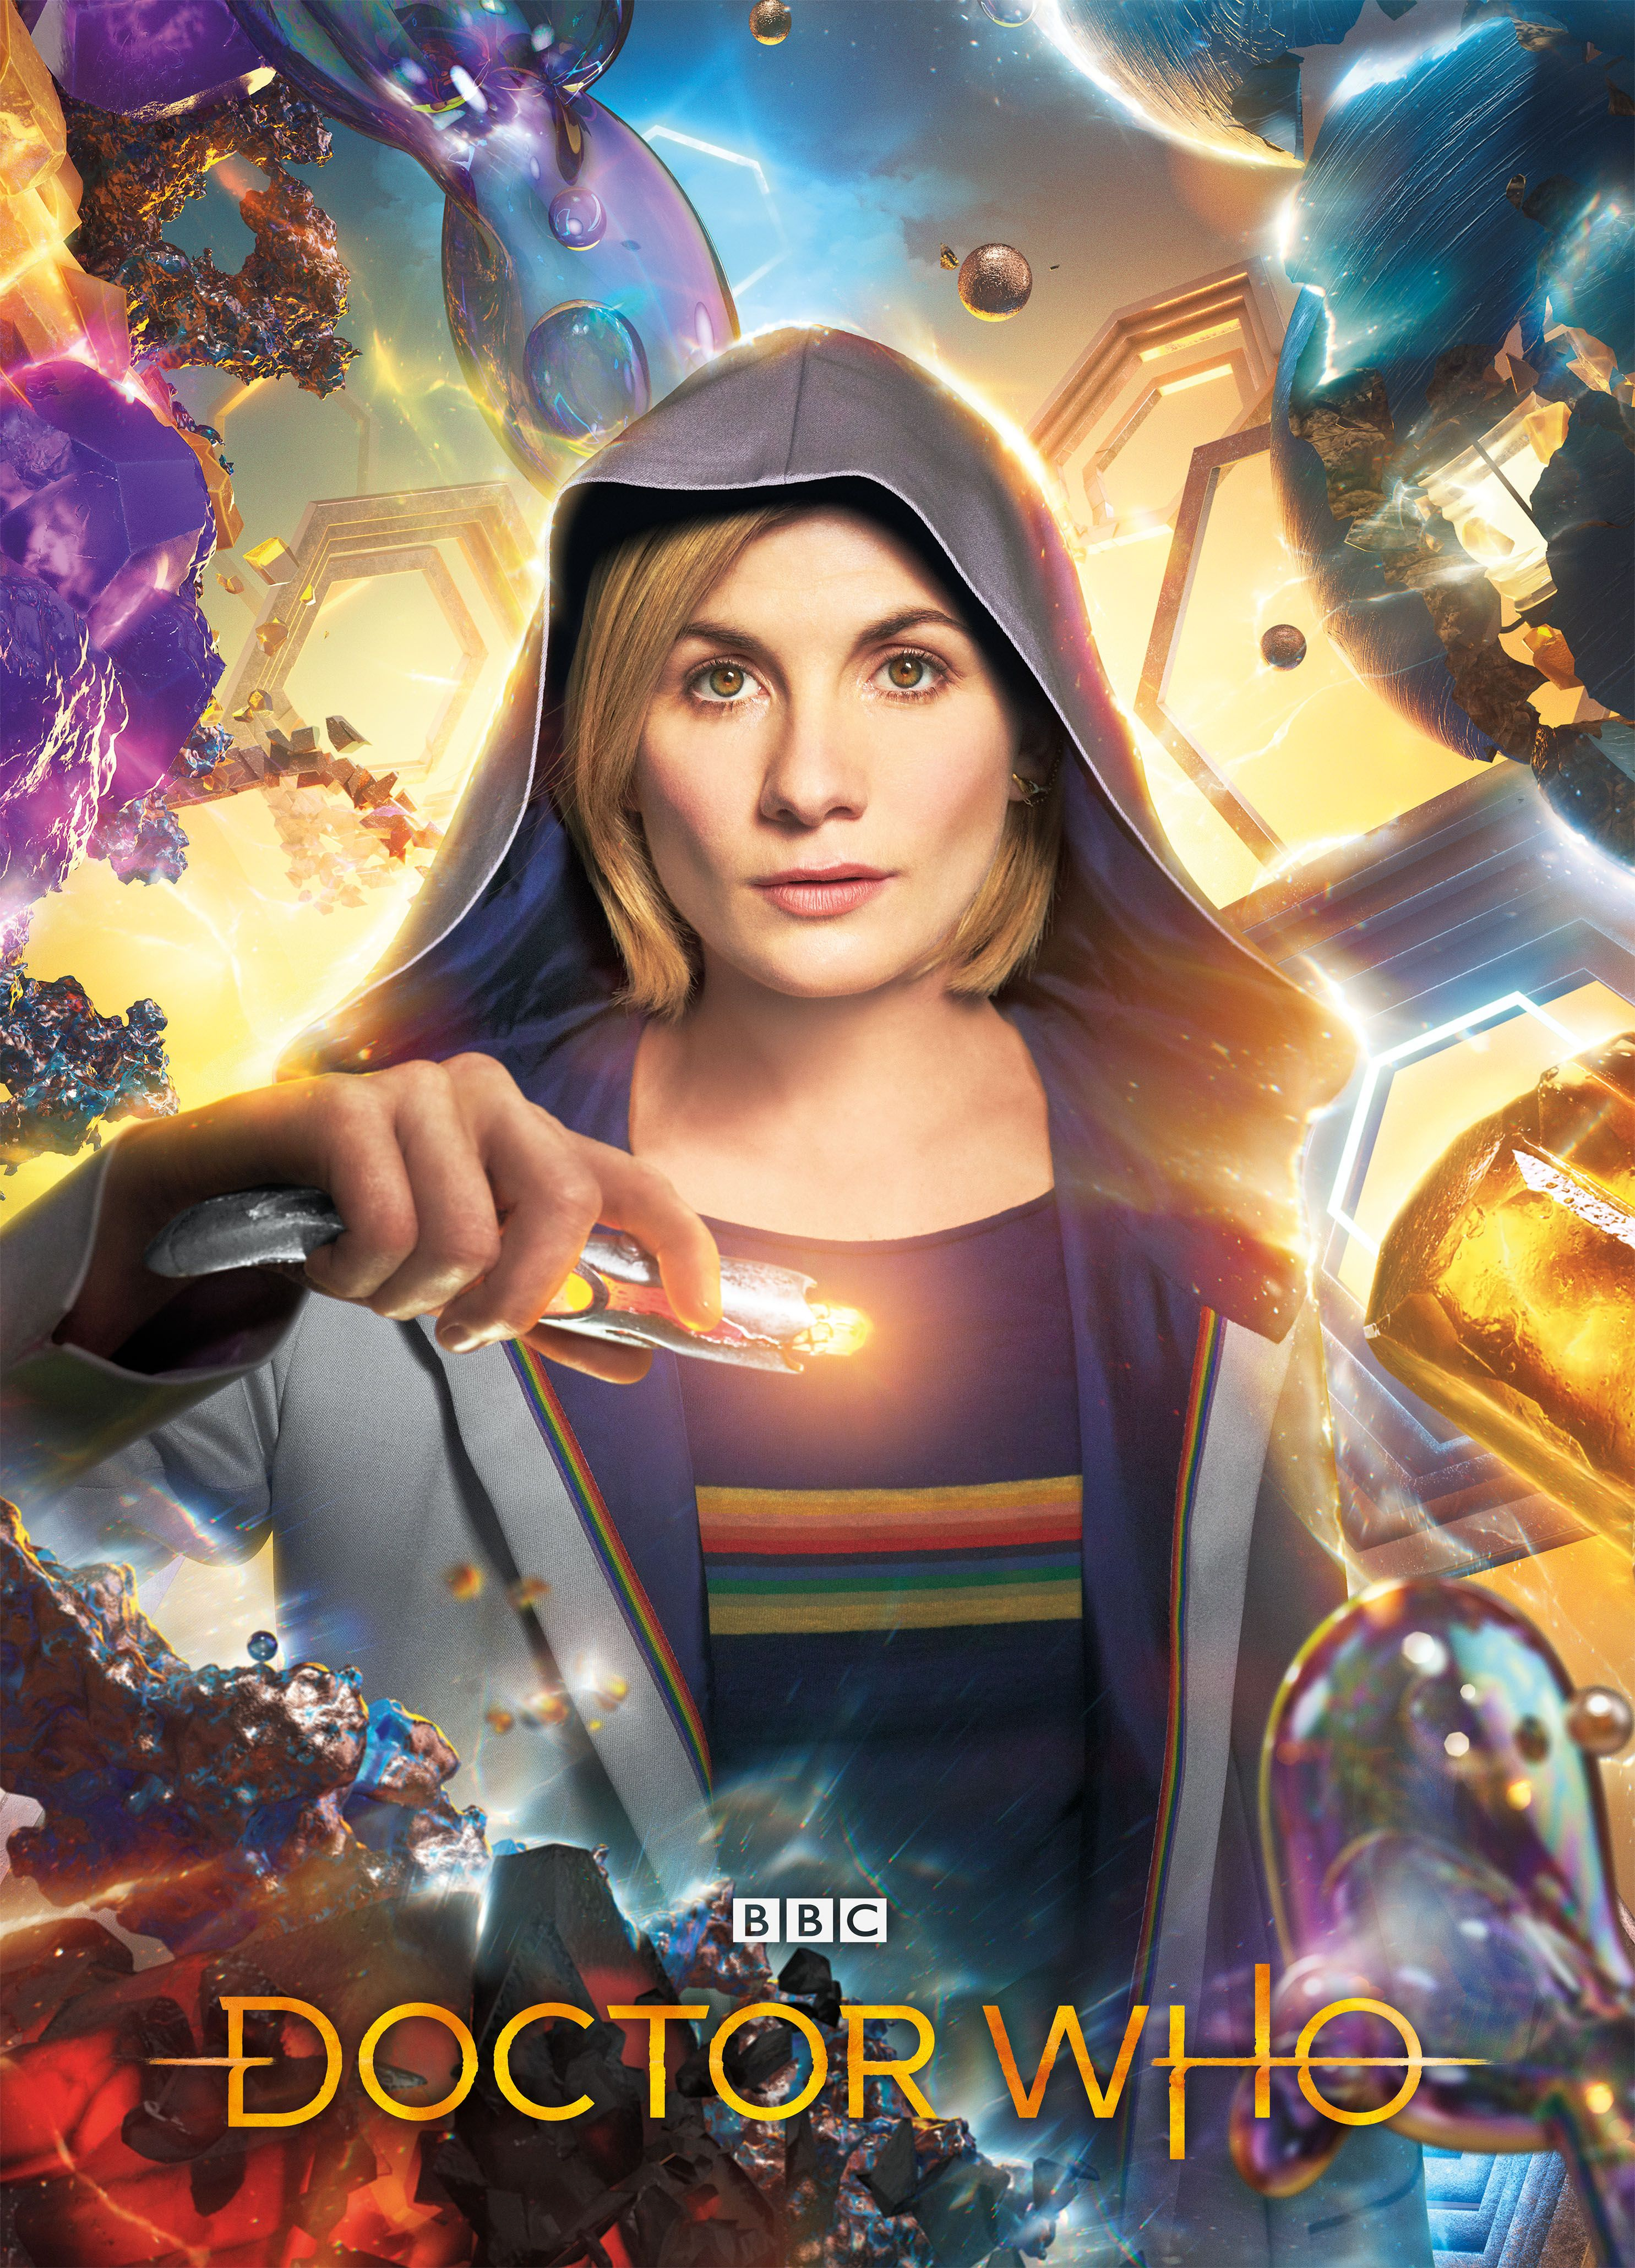 The Doctor Looks And Seems Human